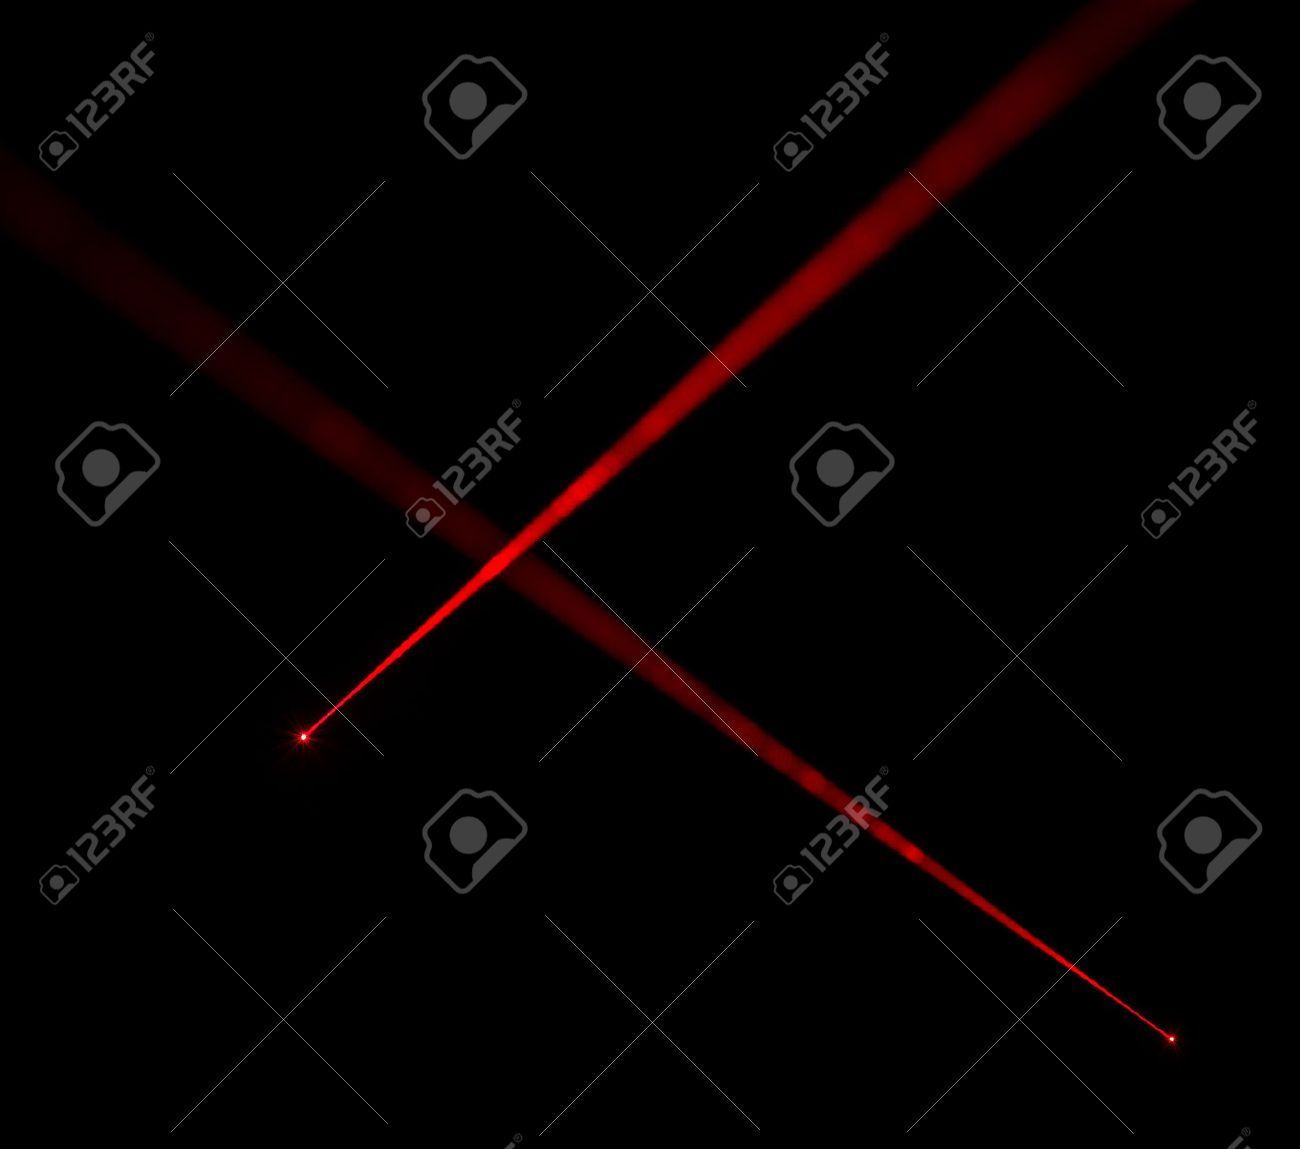 Red laser beams on black background Stock Photo - 33210987